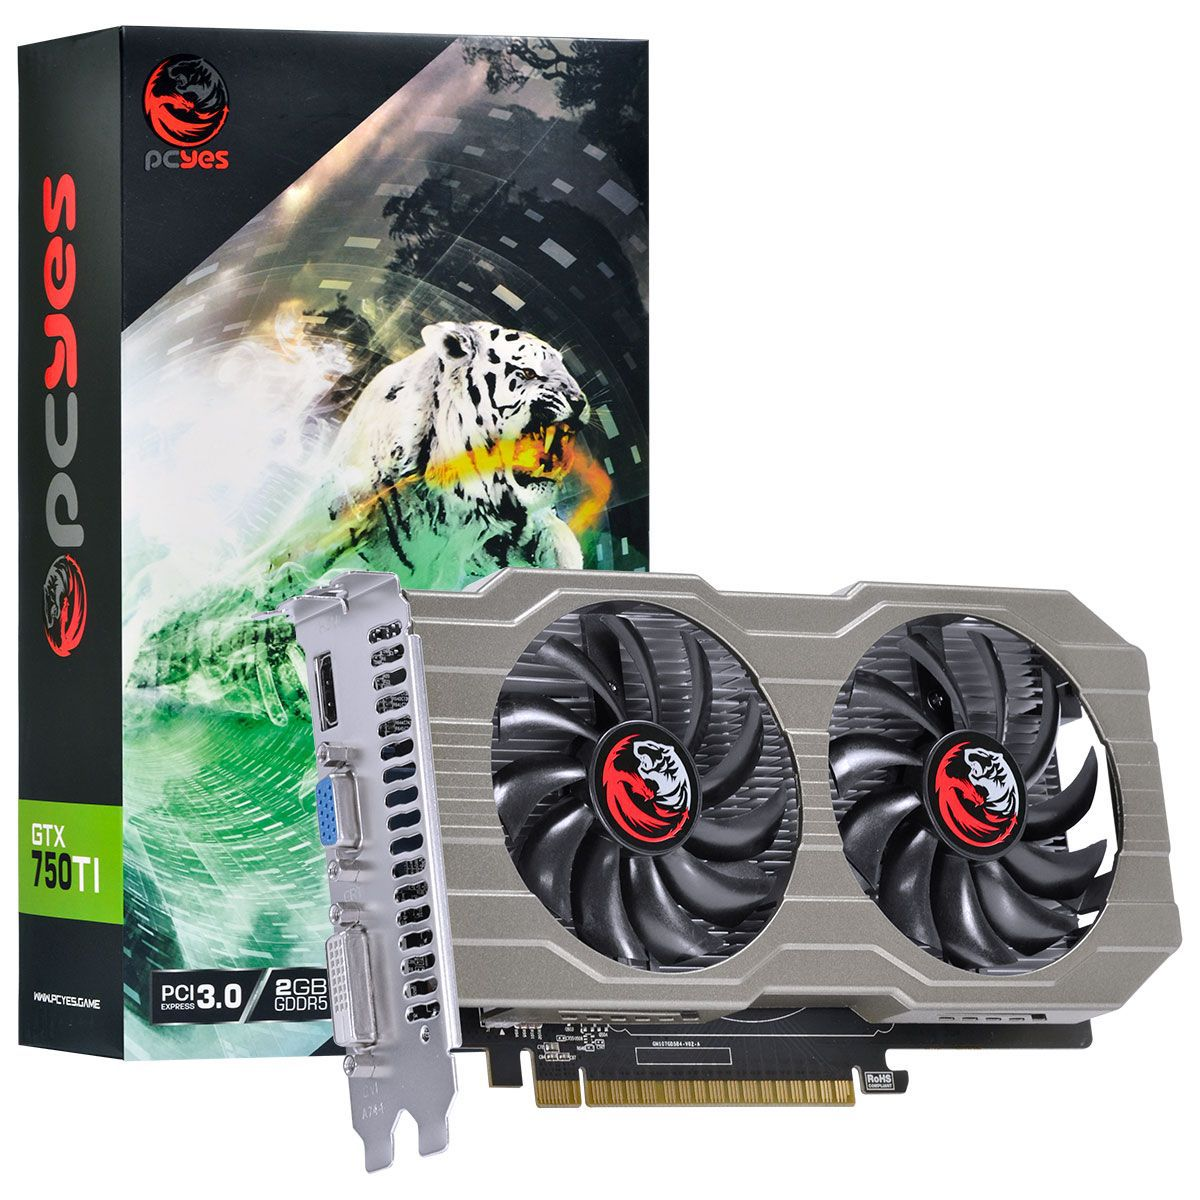 Placa de Vídeo Geforce GTX 750 Ti 2GB GDDR5 128Bits Dual Fan PA750TI12802G5DF - PCYES